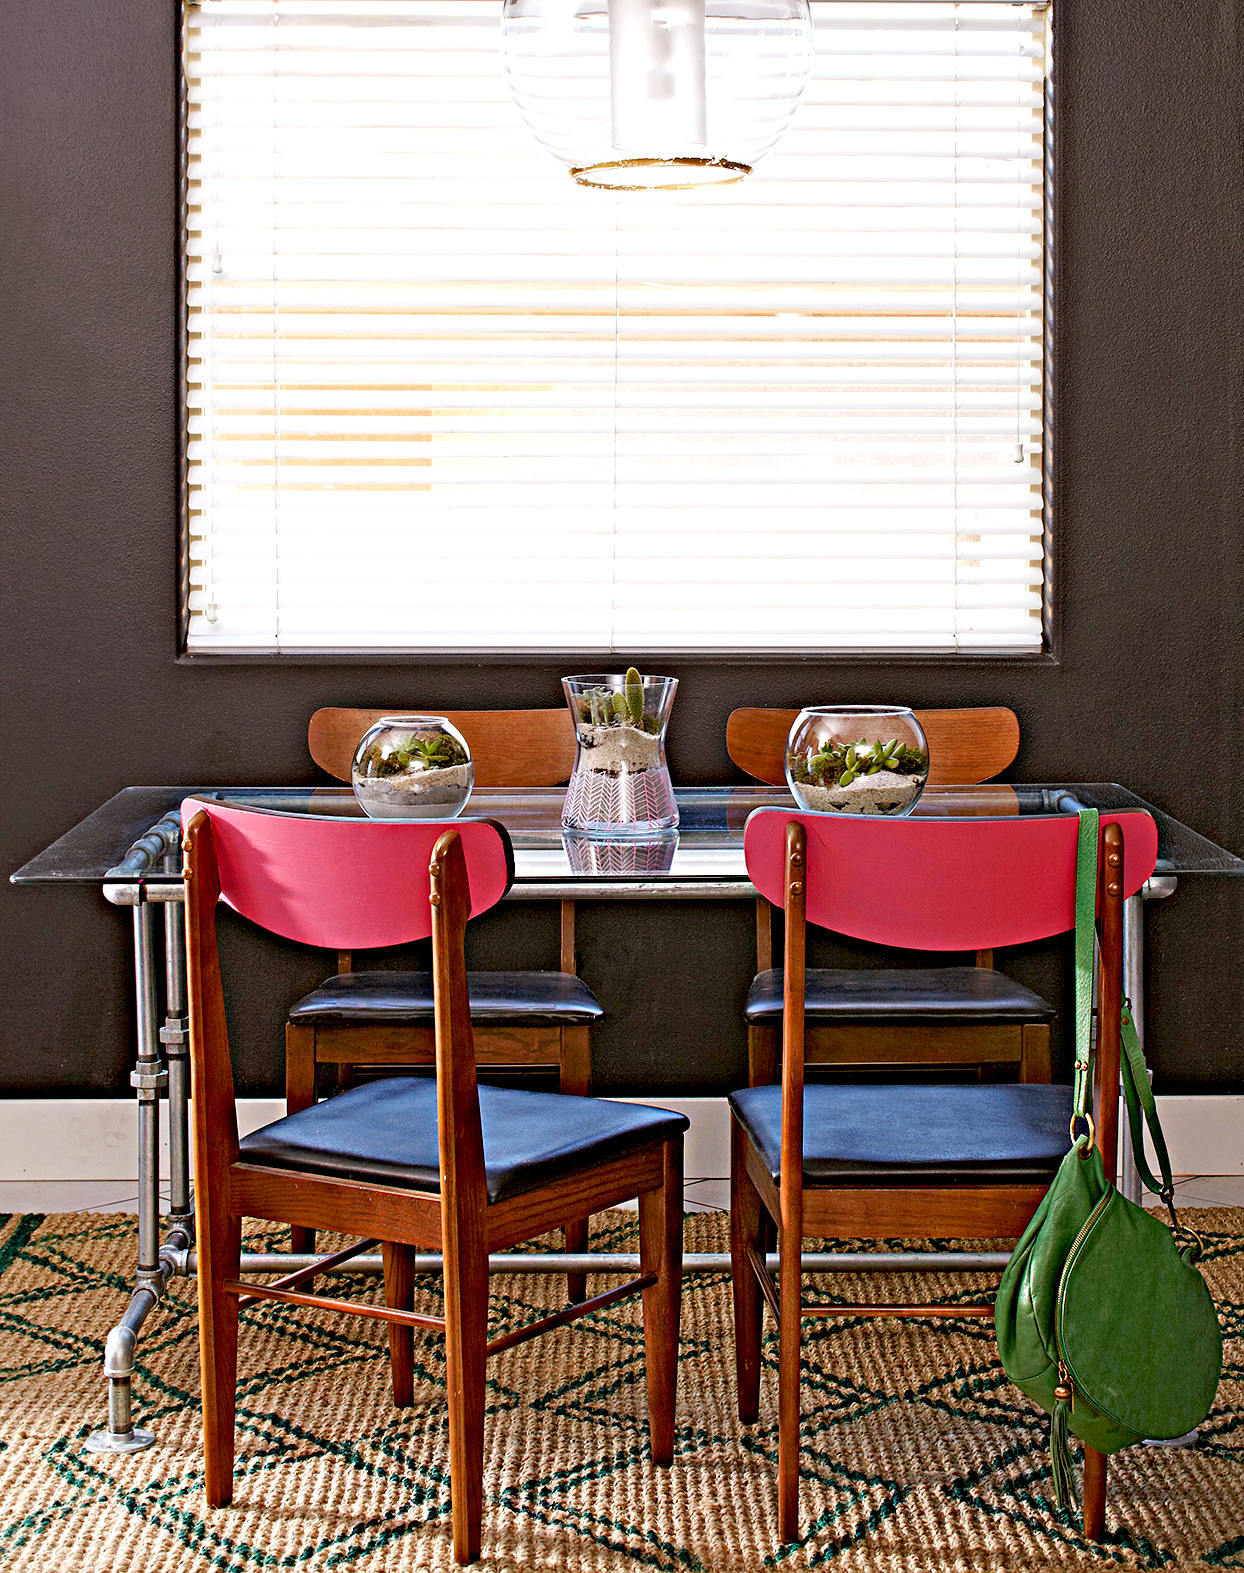 Dining area in front of window